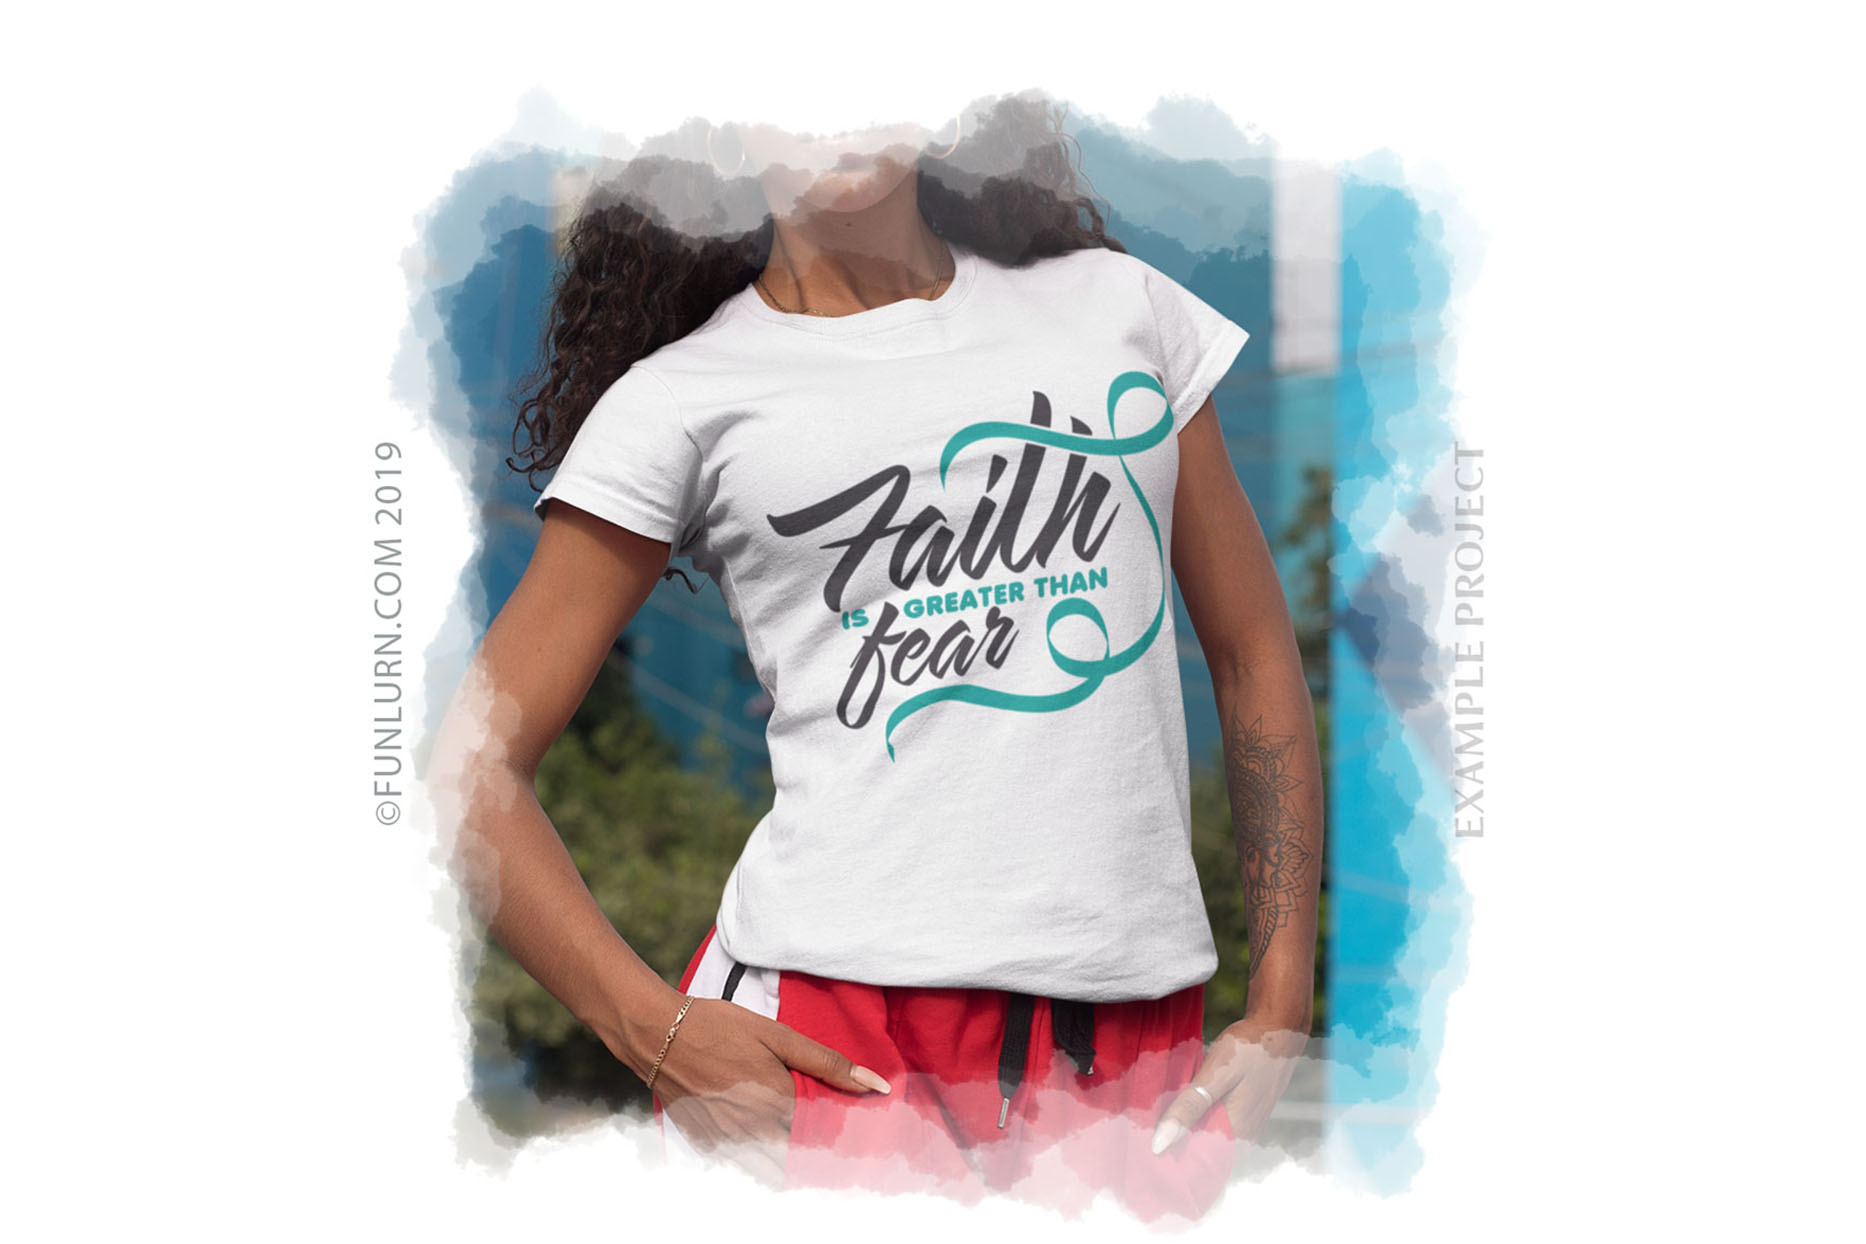 Faith is Greater Than Fear Teal Ribbon SVG Cut File example image 3